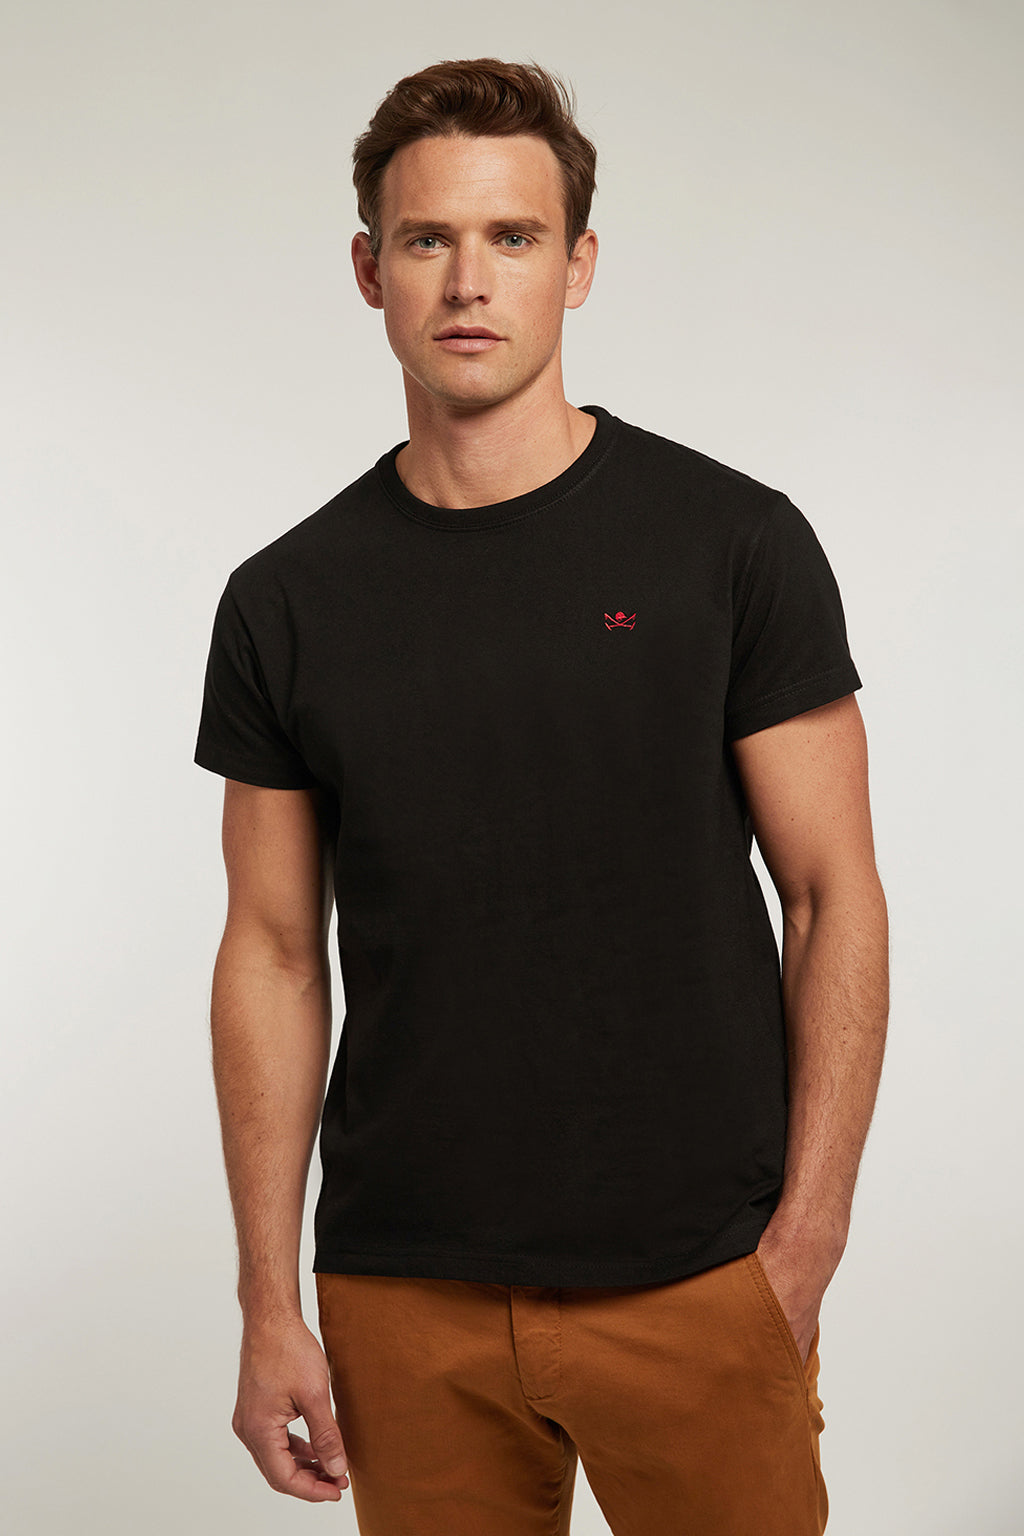 Black custom fit t-shirt with logo